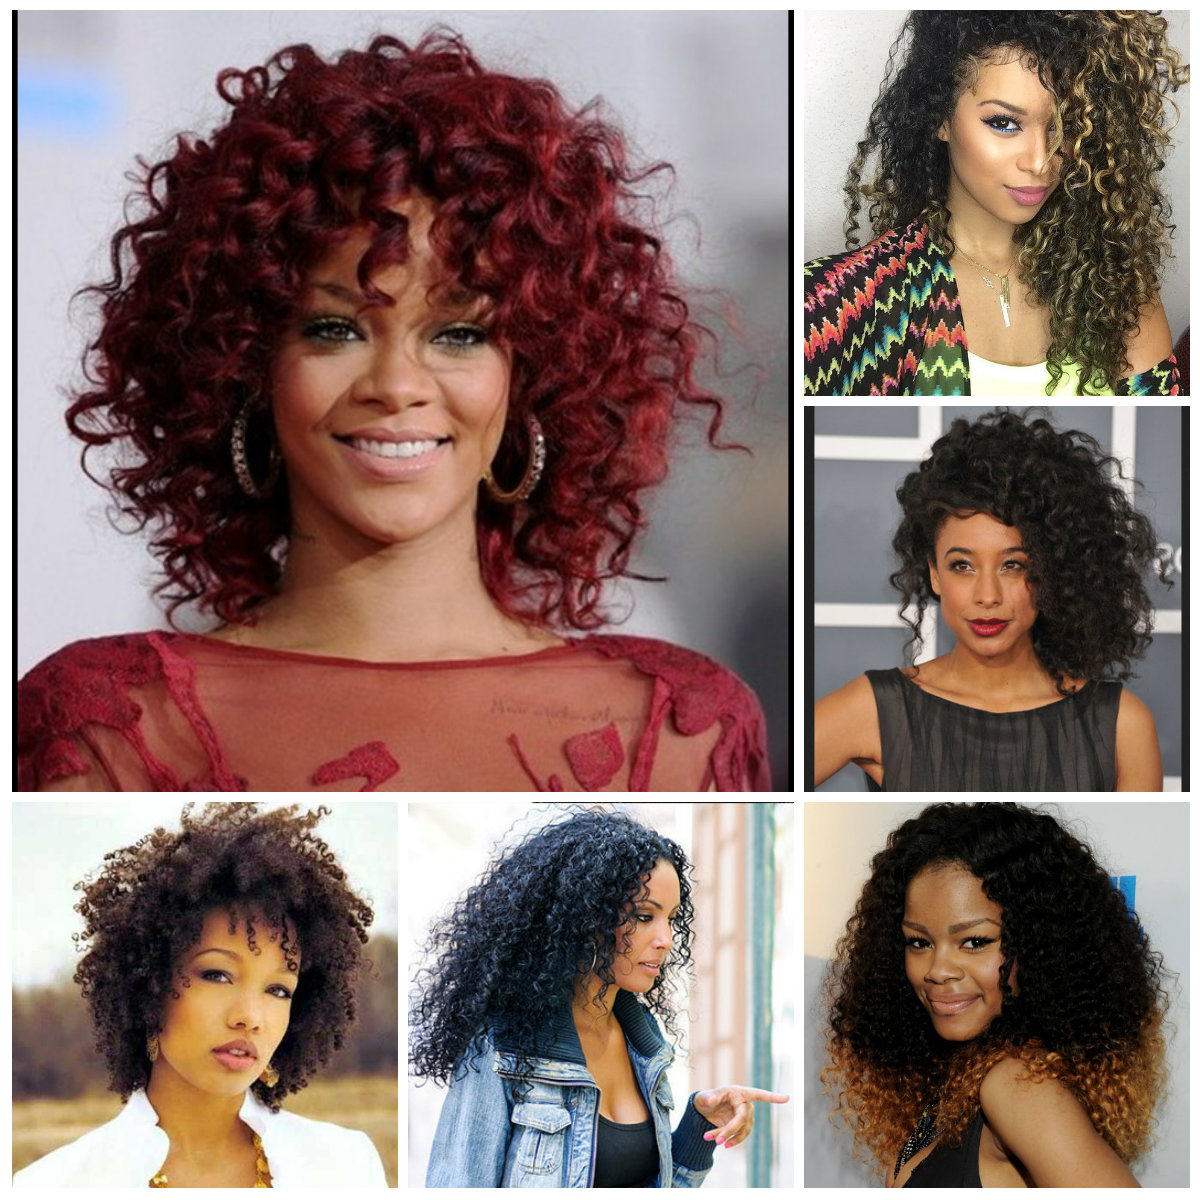 Big Natural Curly Hairstyles For Black Women (View 9 of 20)